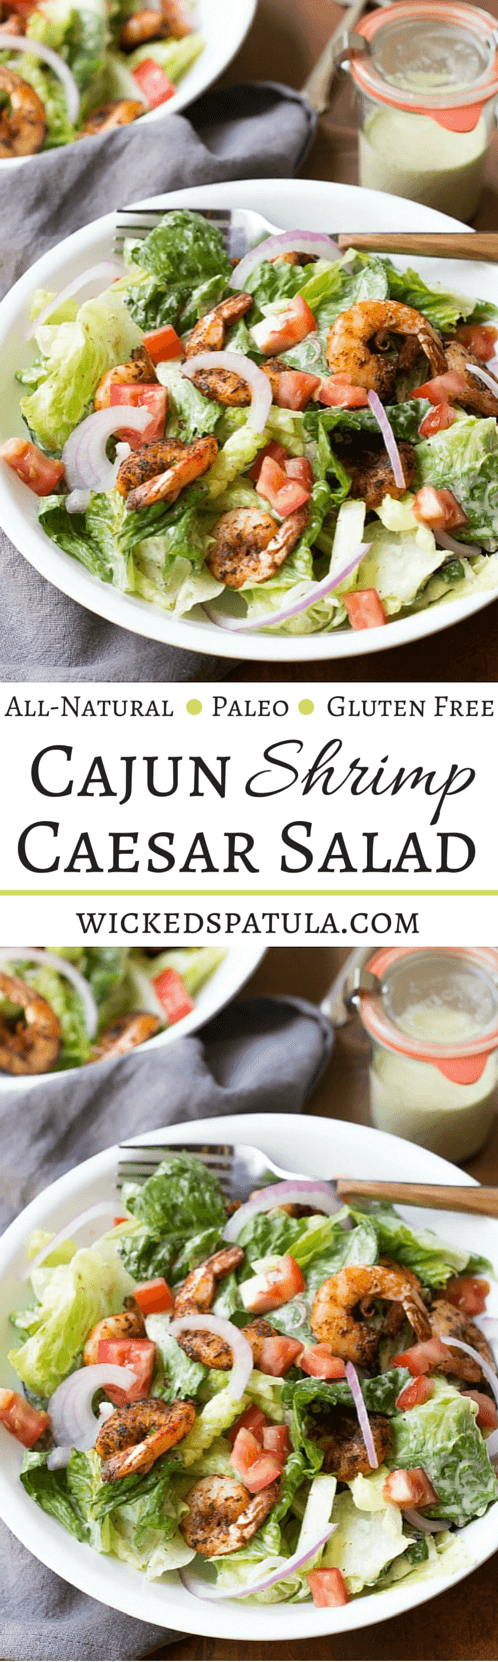 Quick and Easy Paleo Caesar Salad with Cajun Shrimp! | wickedspatula.com